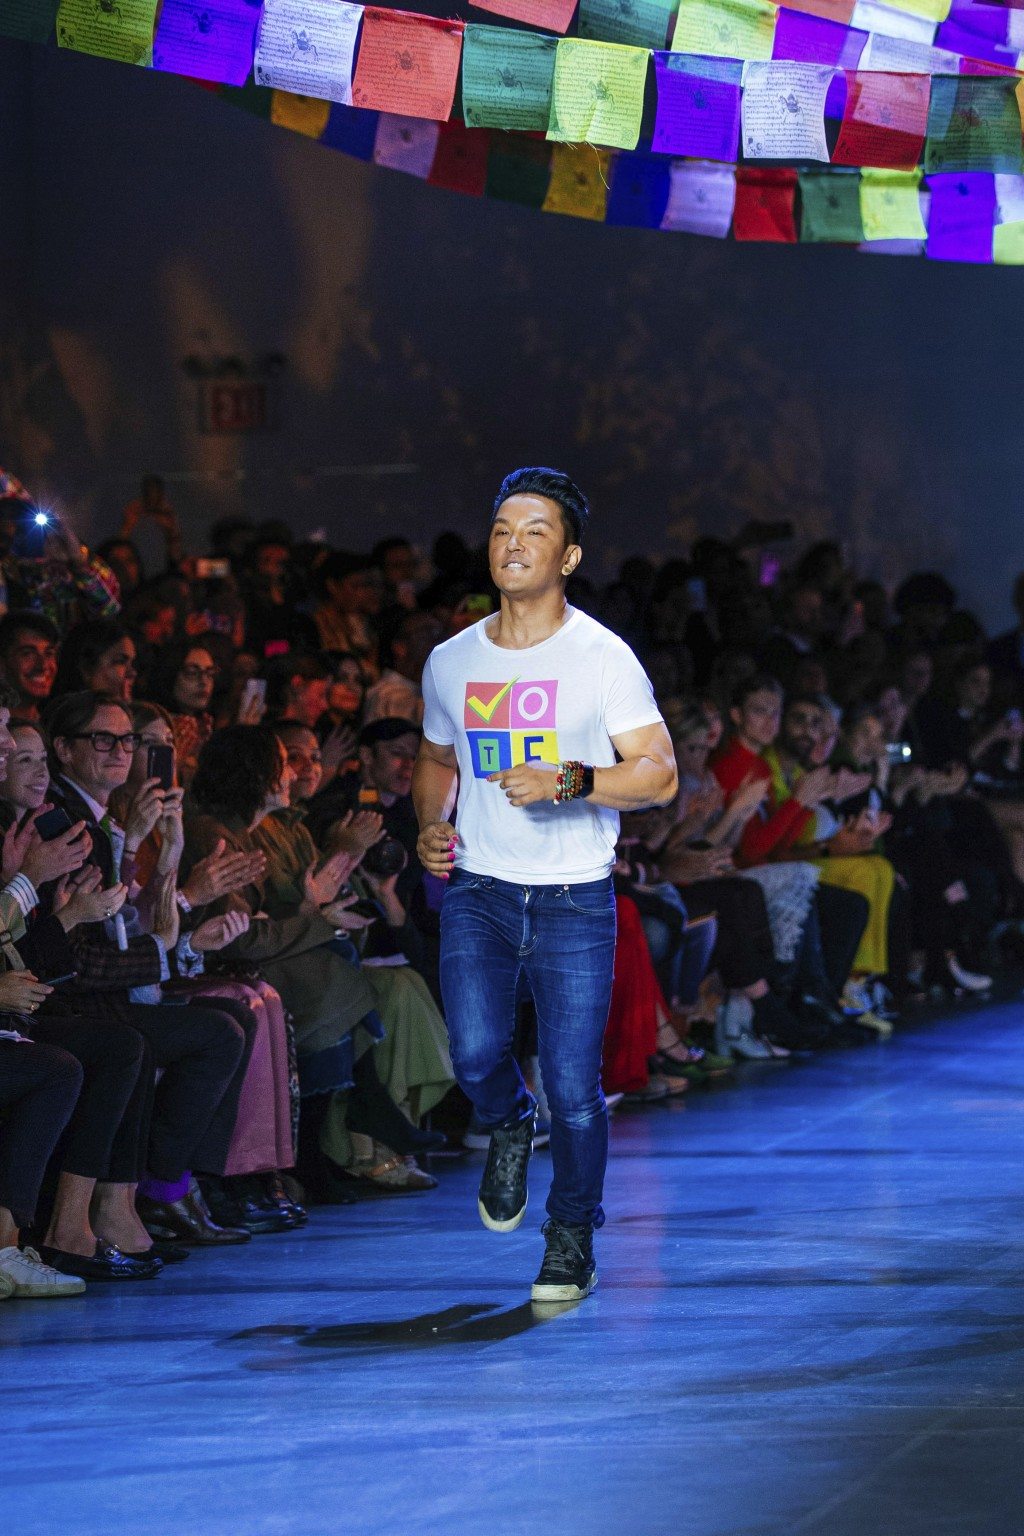 Prabal Gurung jogs onto the runway following his spring 2019 collection during Fashion Week Sunday, Sept. 9, 2018, in New York. (AP Photo/Kevin Hagen)